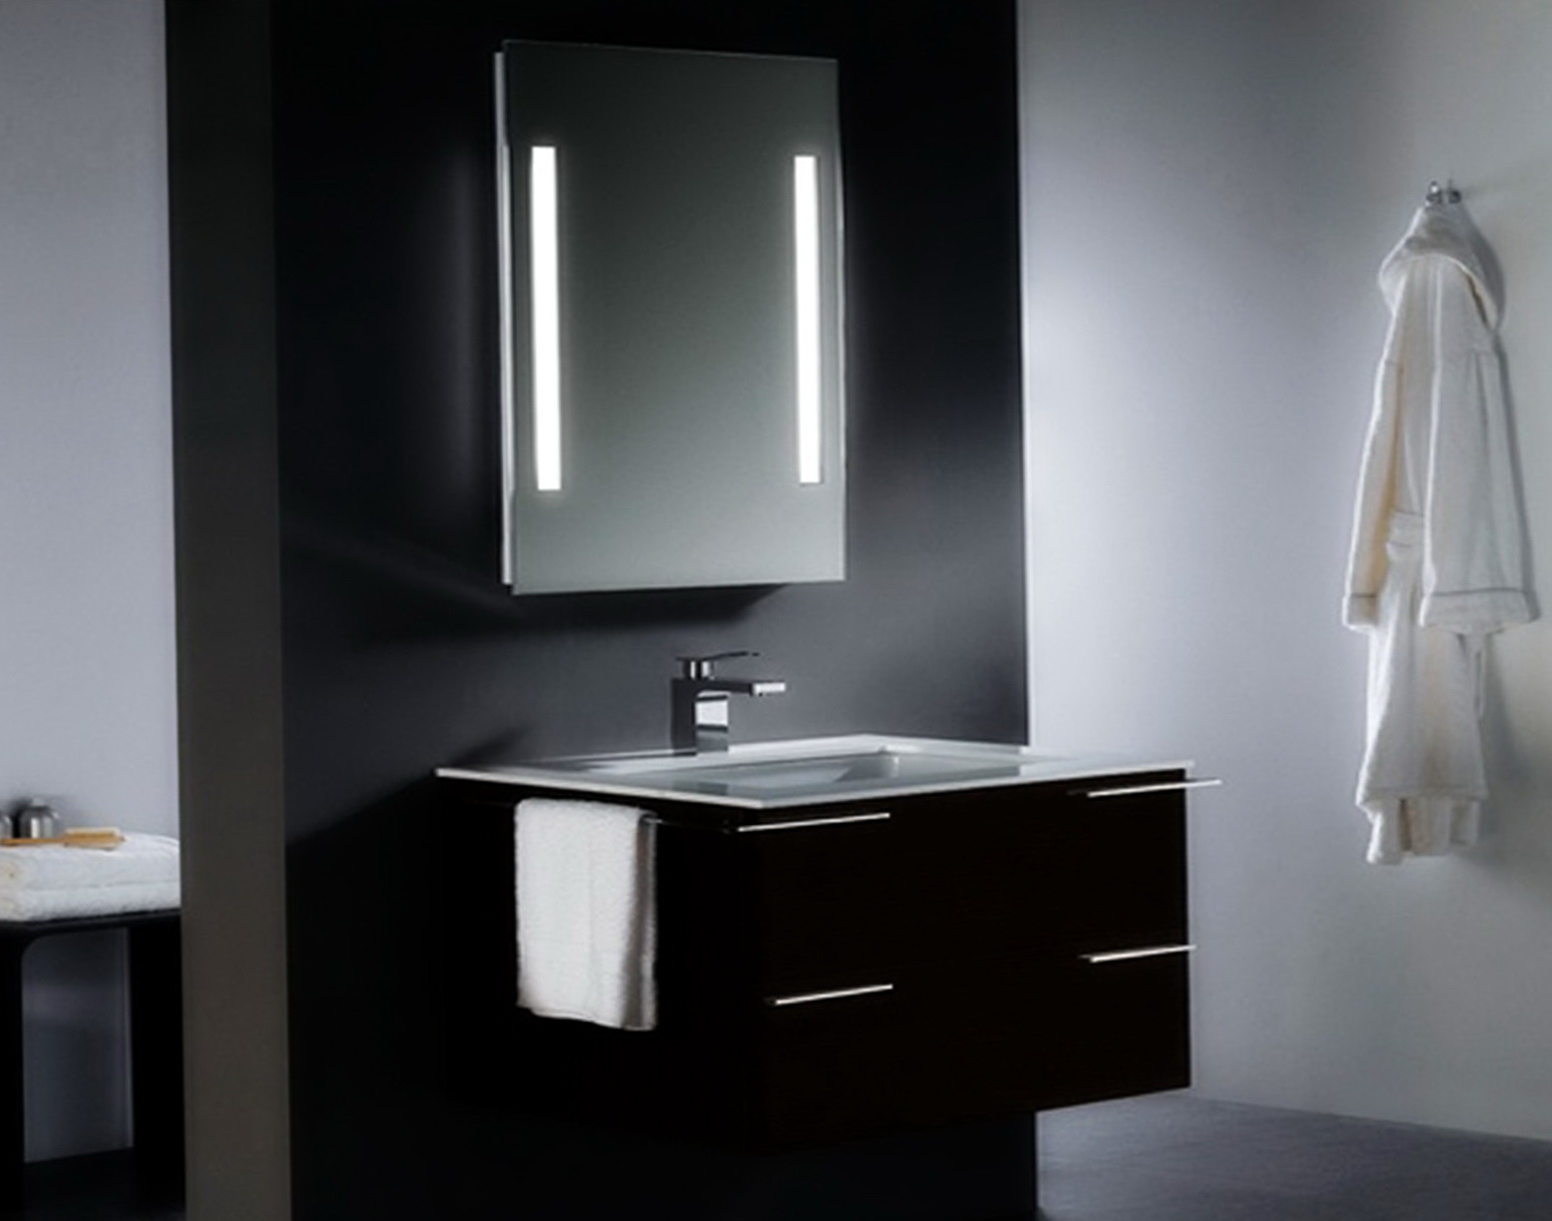 24 Inch Bathroom Vanity Under 400